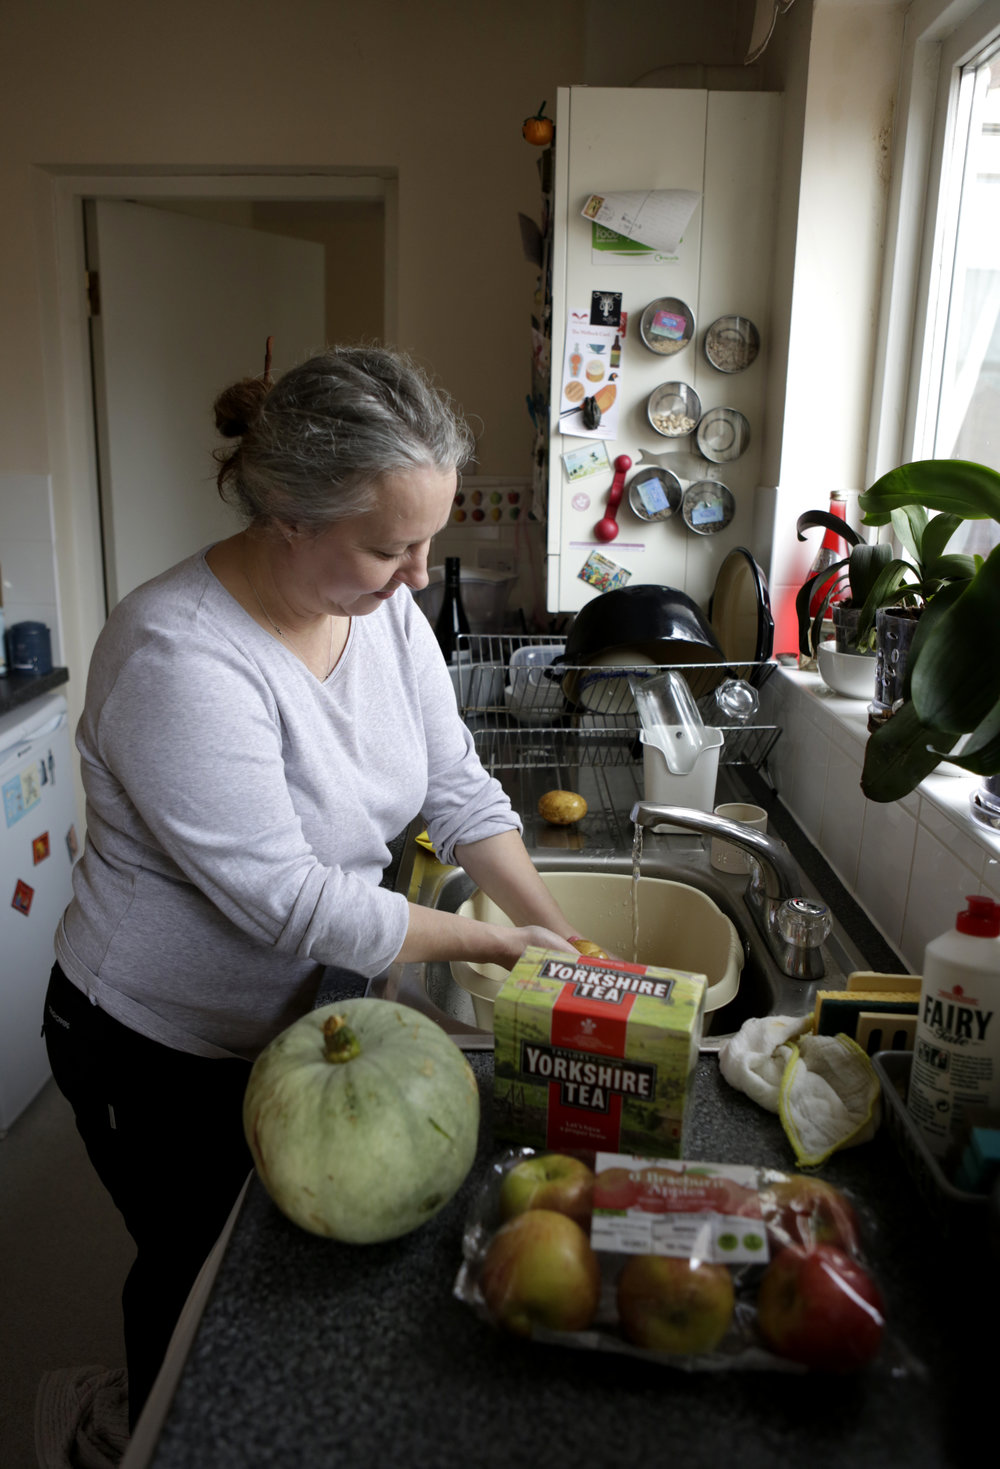 Michele, a special needs teacher from France, in her kitchen. Bolsover, October 2016.